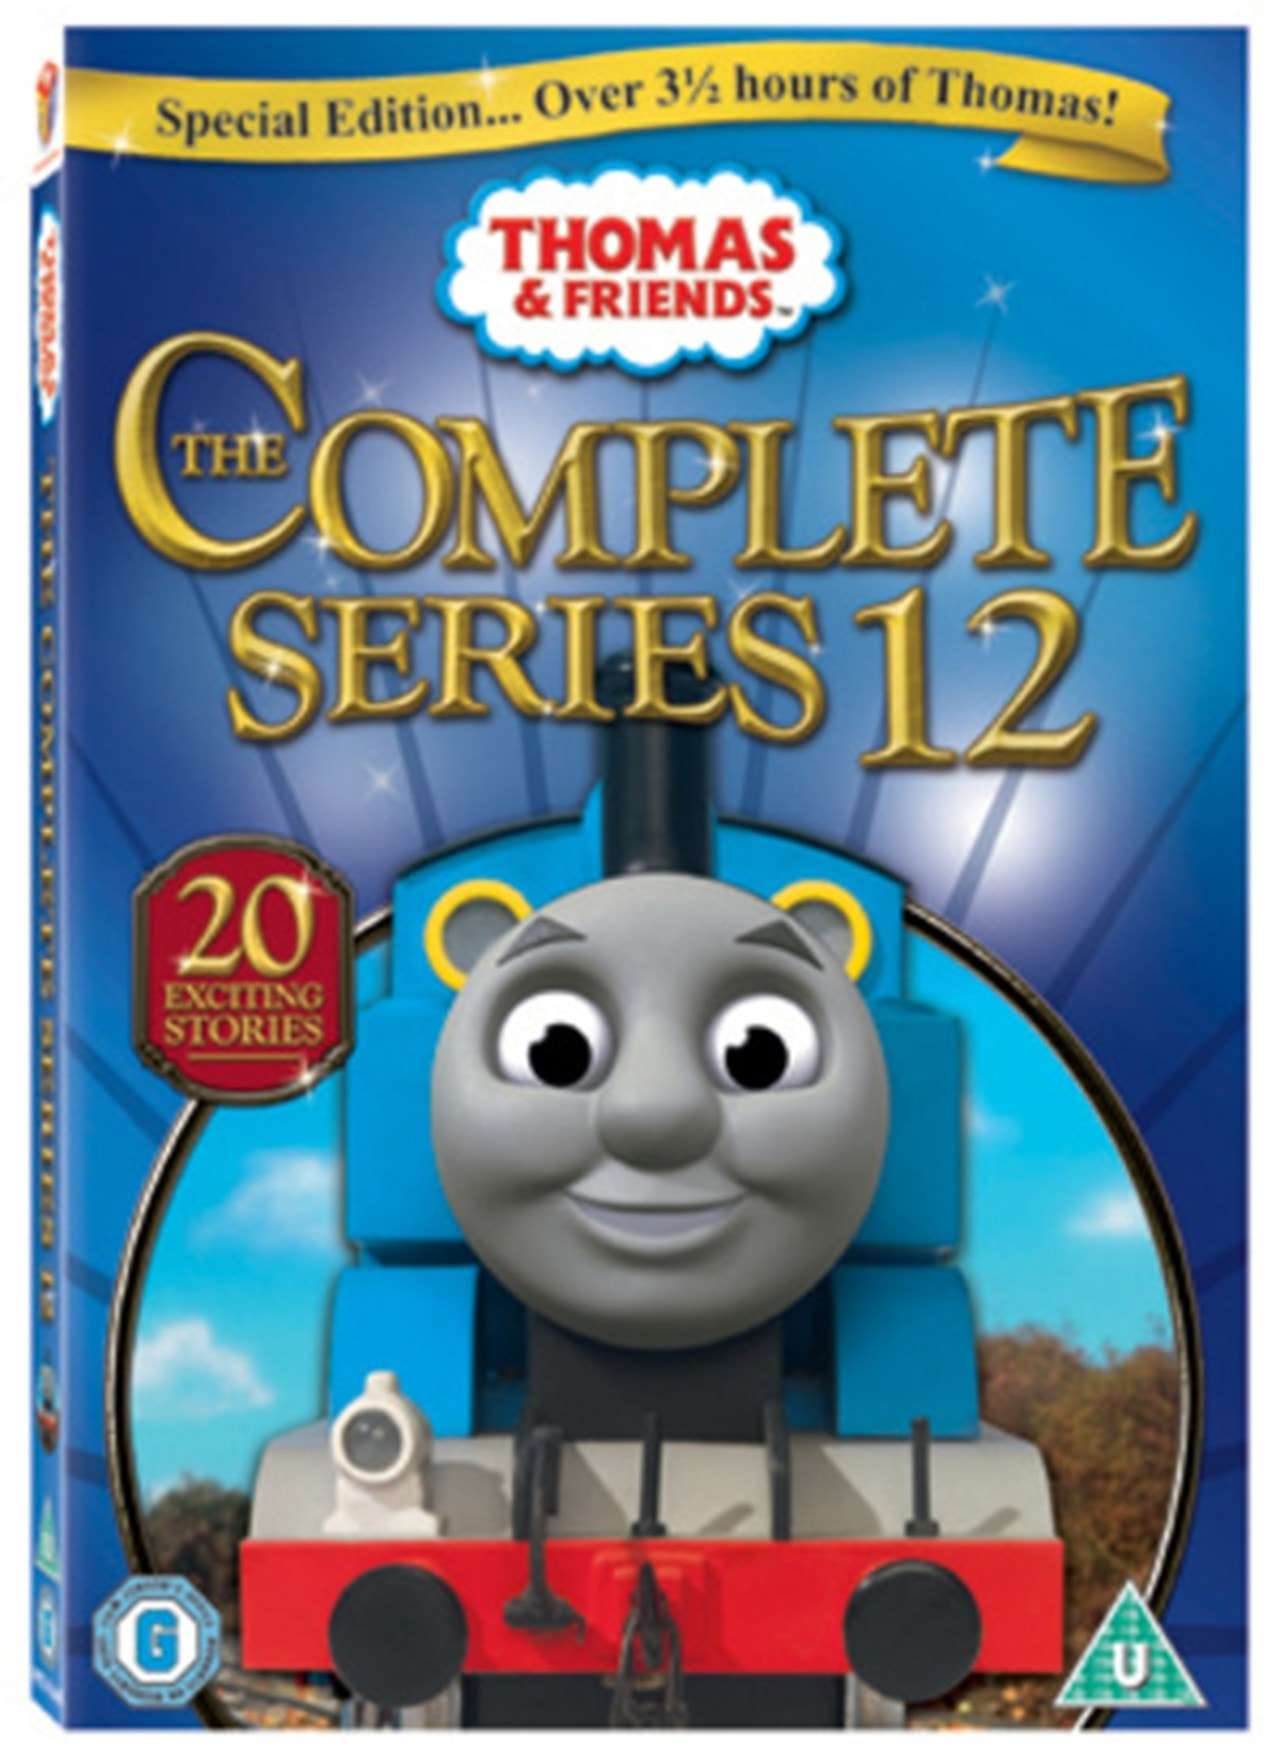 Thomas & Friends: The Complete Series 12 - 1